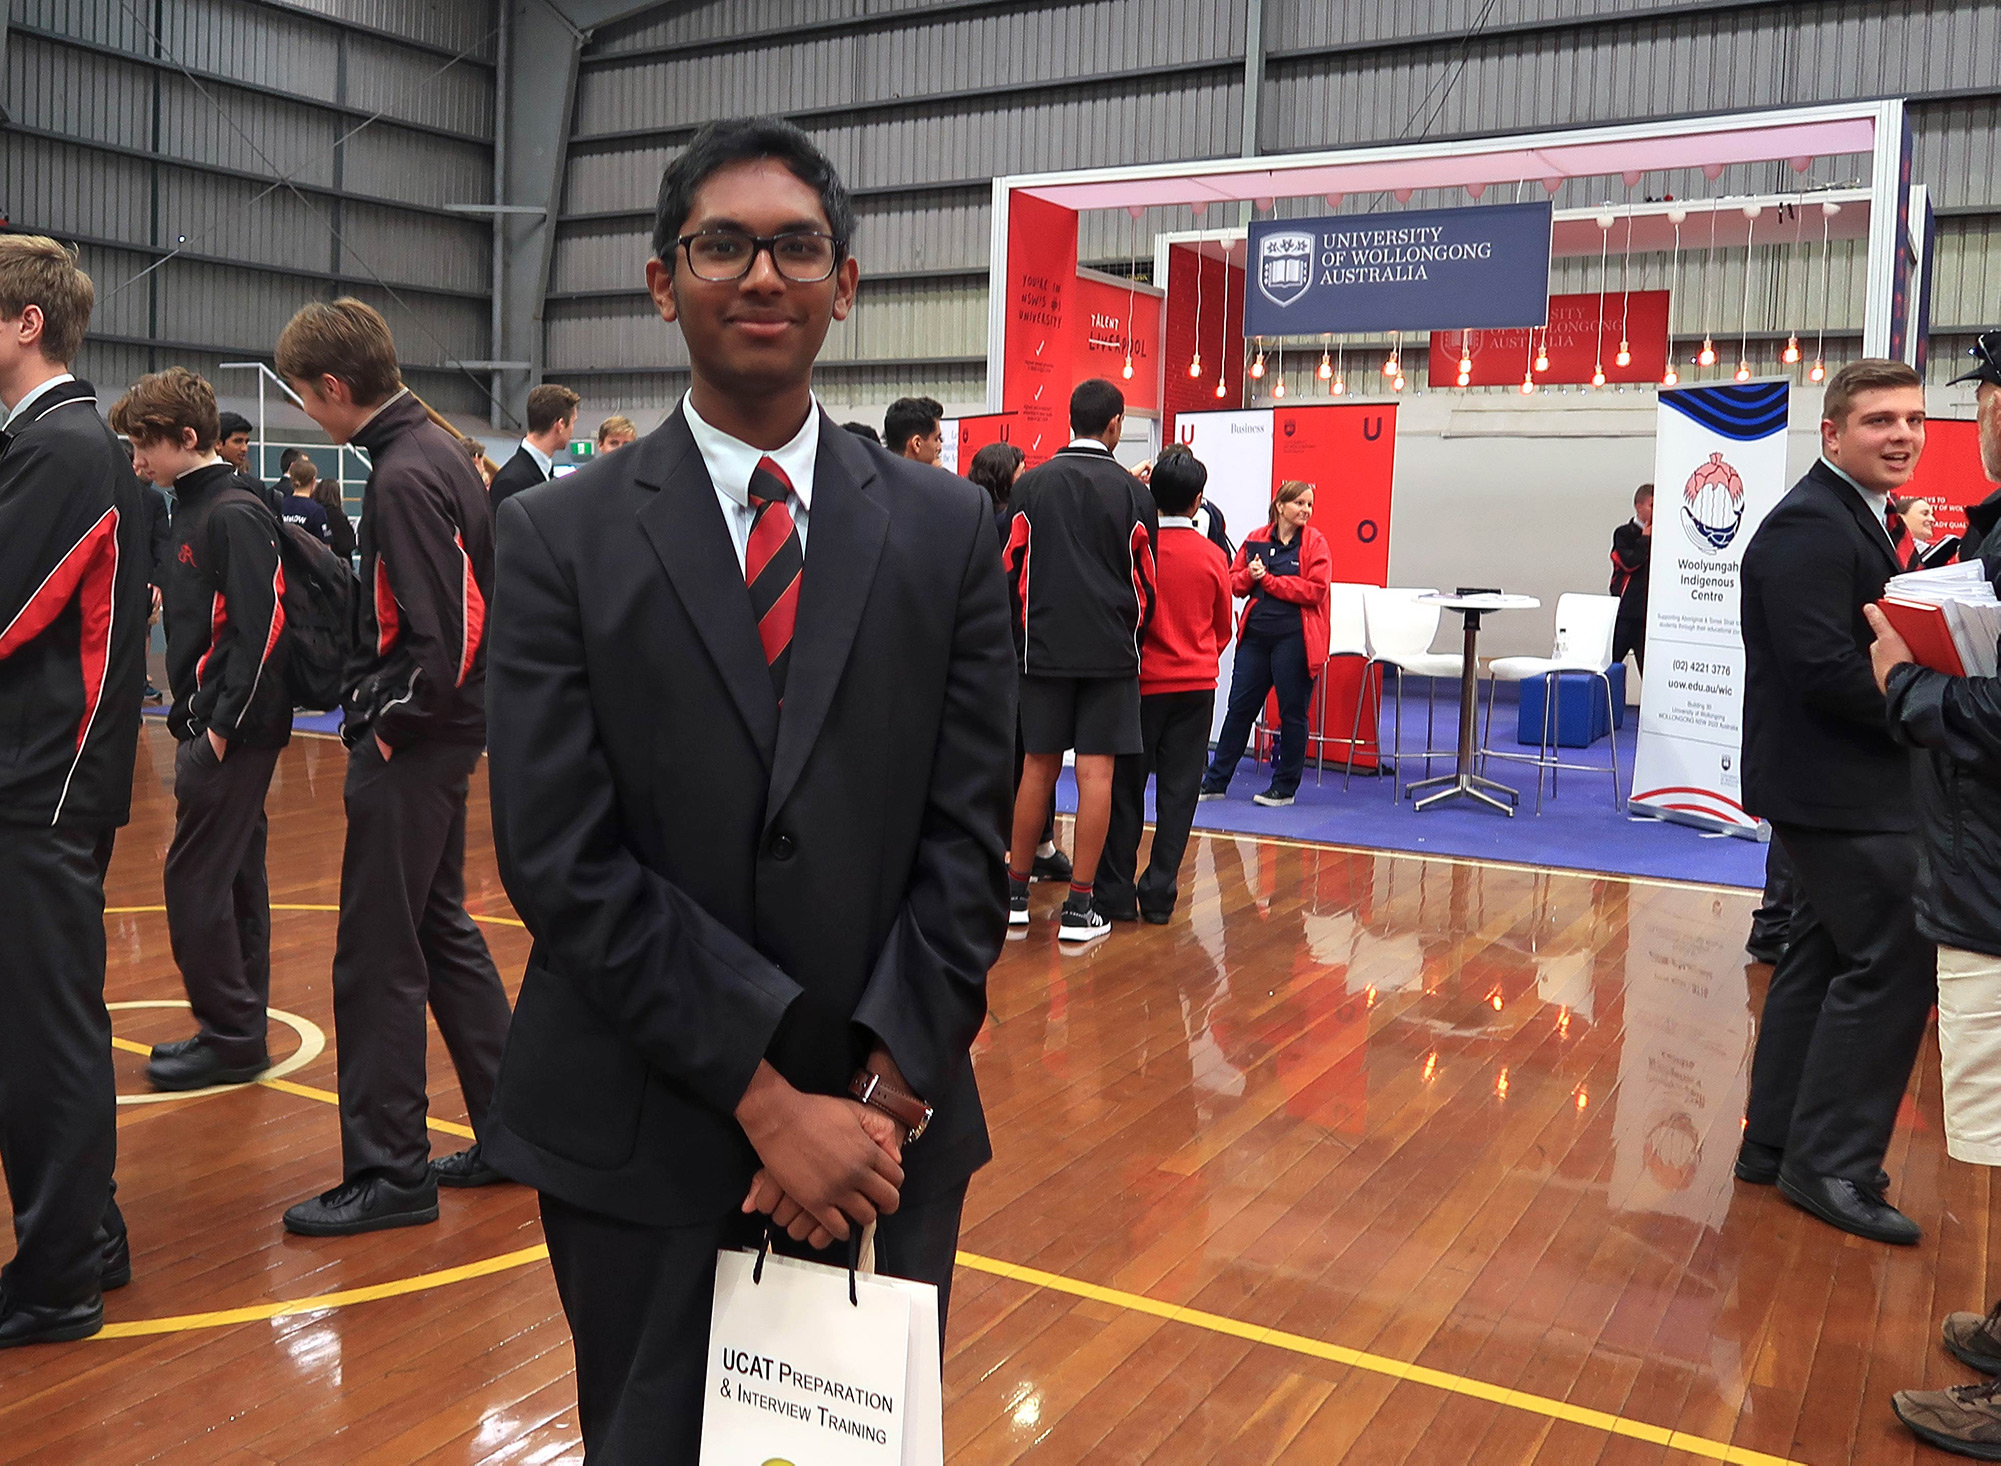 A student smiles at a careers expo while other students mingle in the background